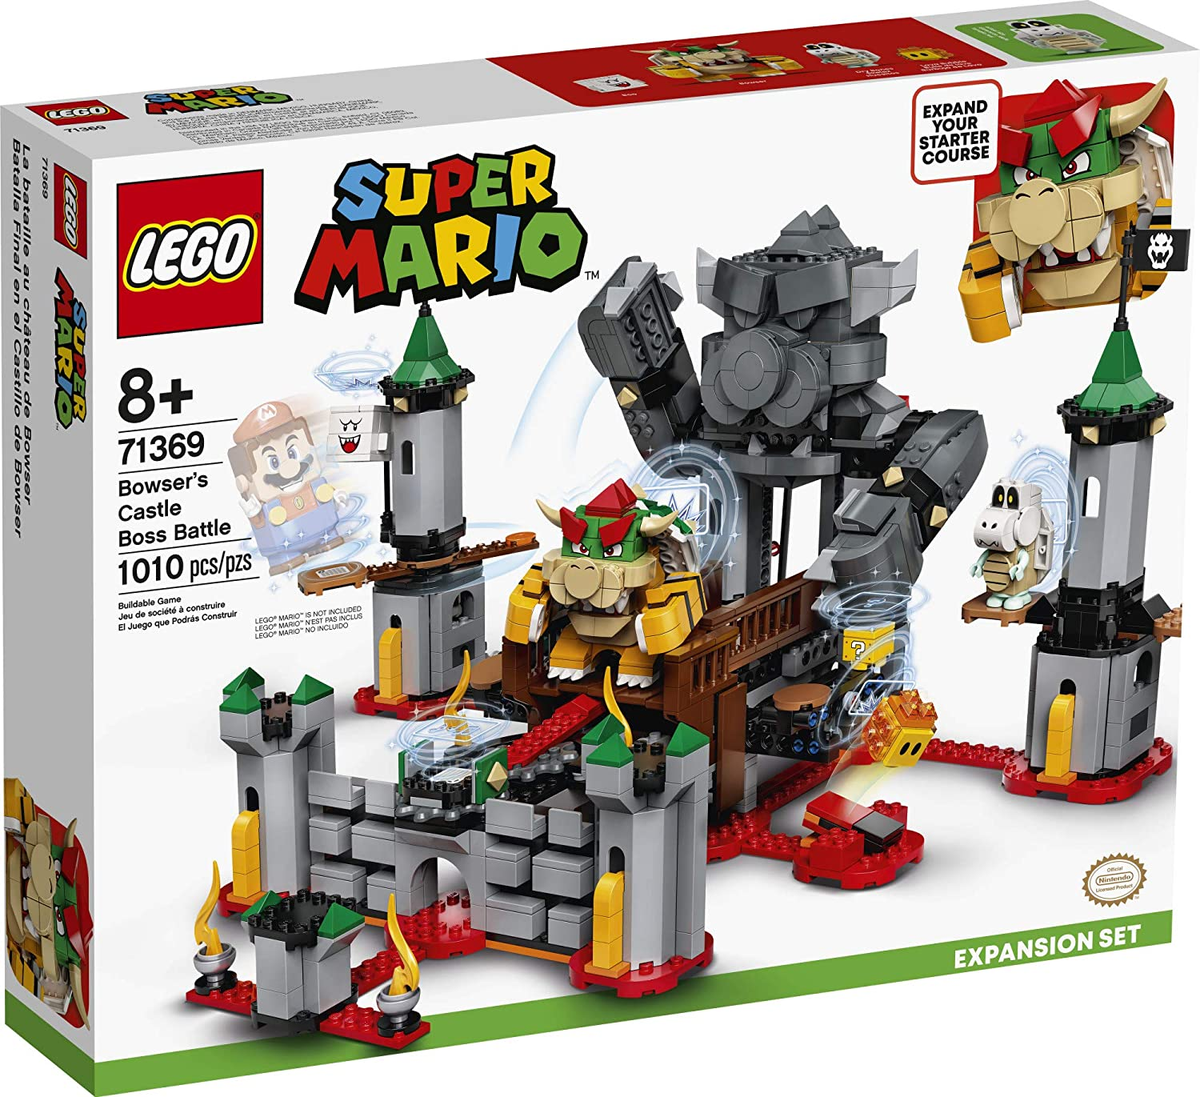 LEGO Super Mario Bowser's Castle Boss Battle Expansion is available now on Amazon: 2